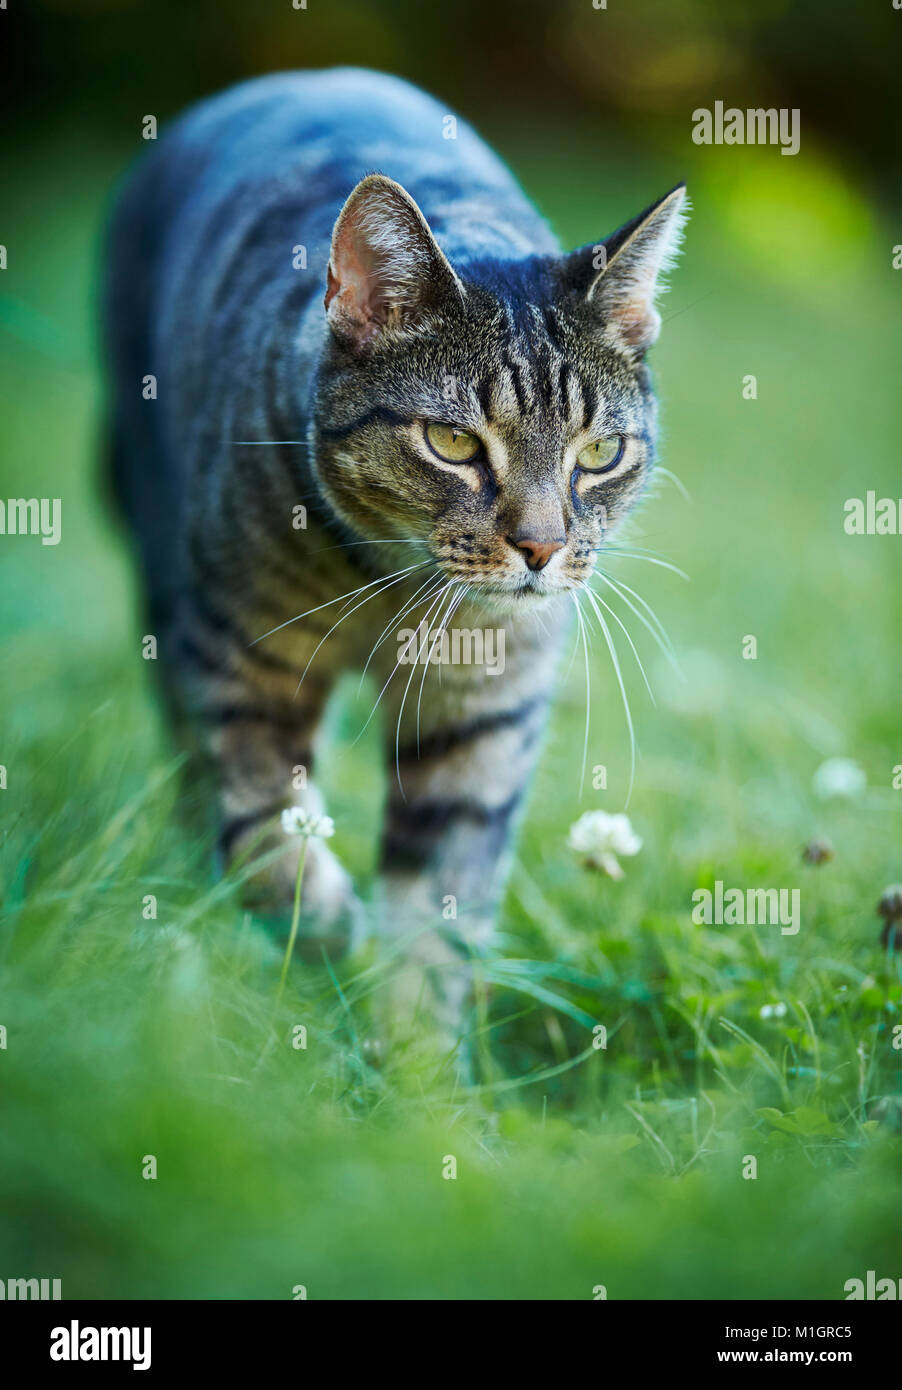 Domestic cat. Gray tabby adult walking in grass. Germany. - Stock Image